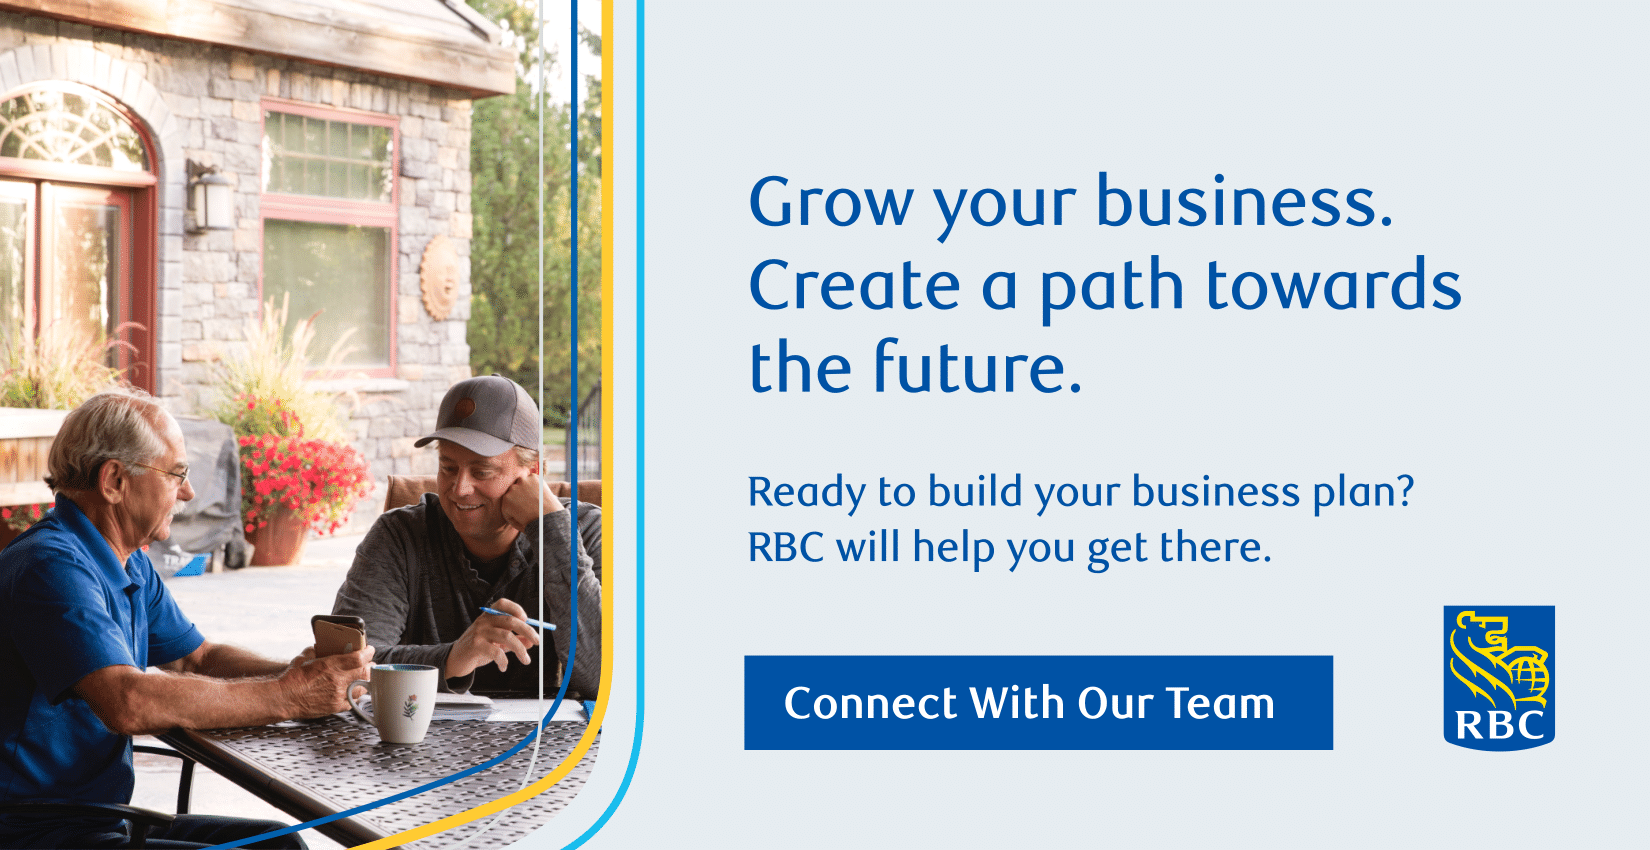 Grow your business. Create a path towards the future.